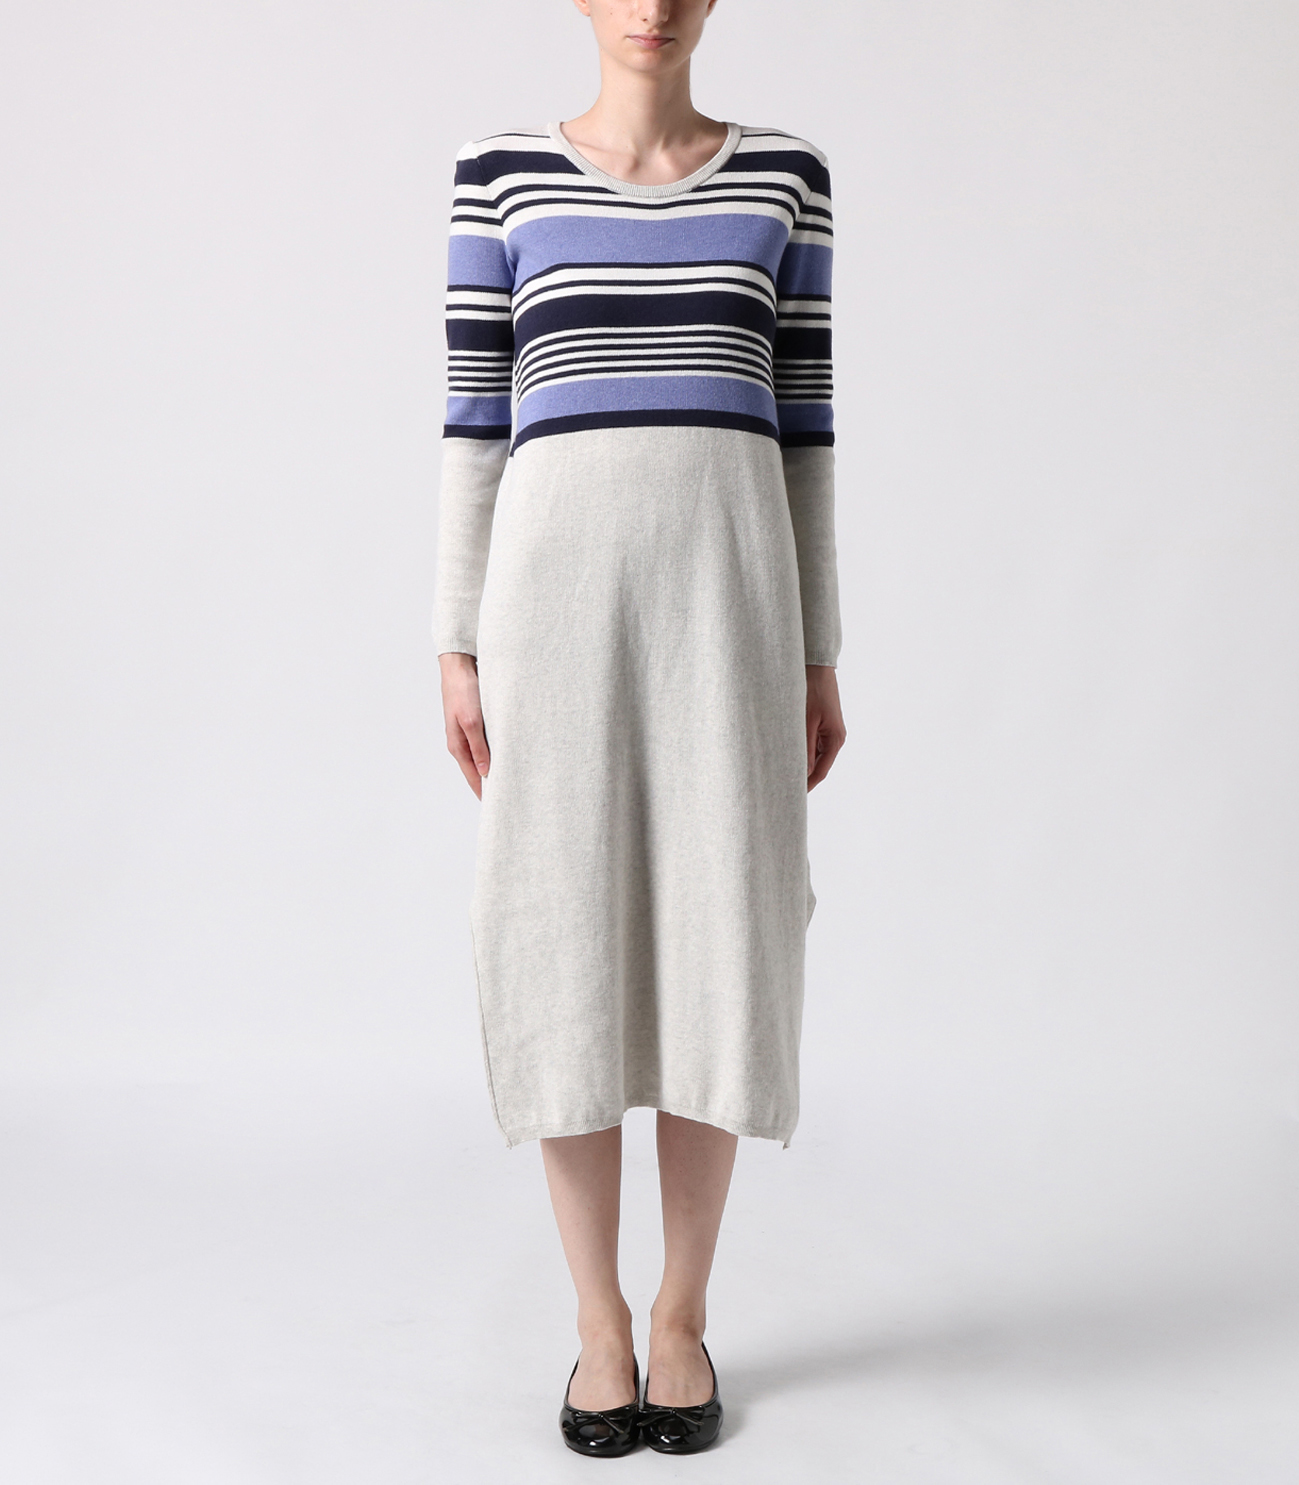 cotton melange l/s long dress 詳細画像 ash multi 2